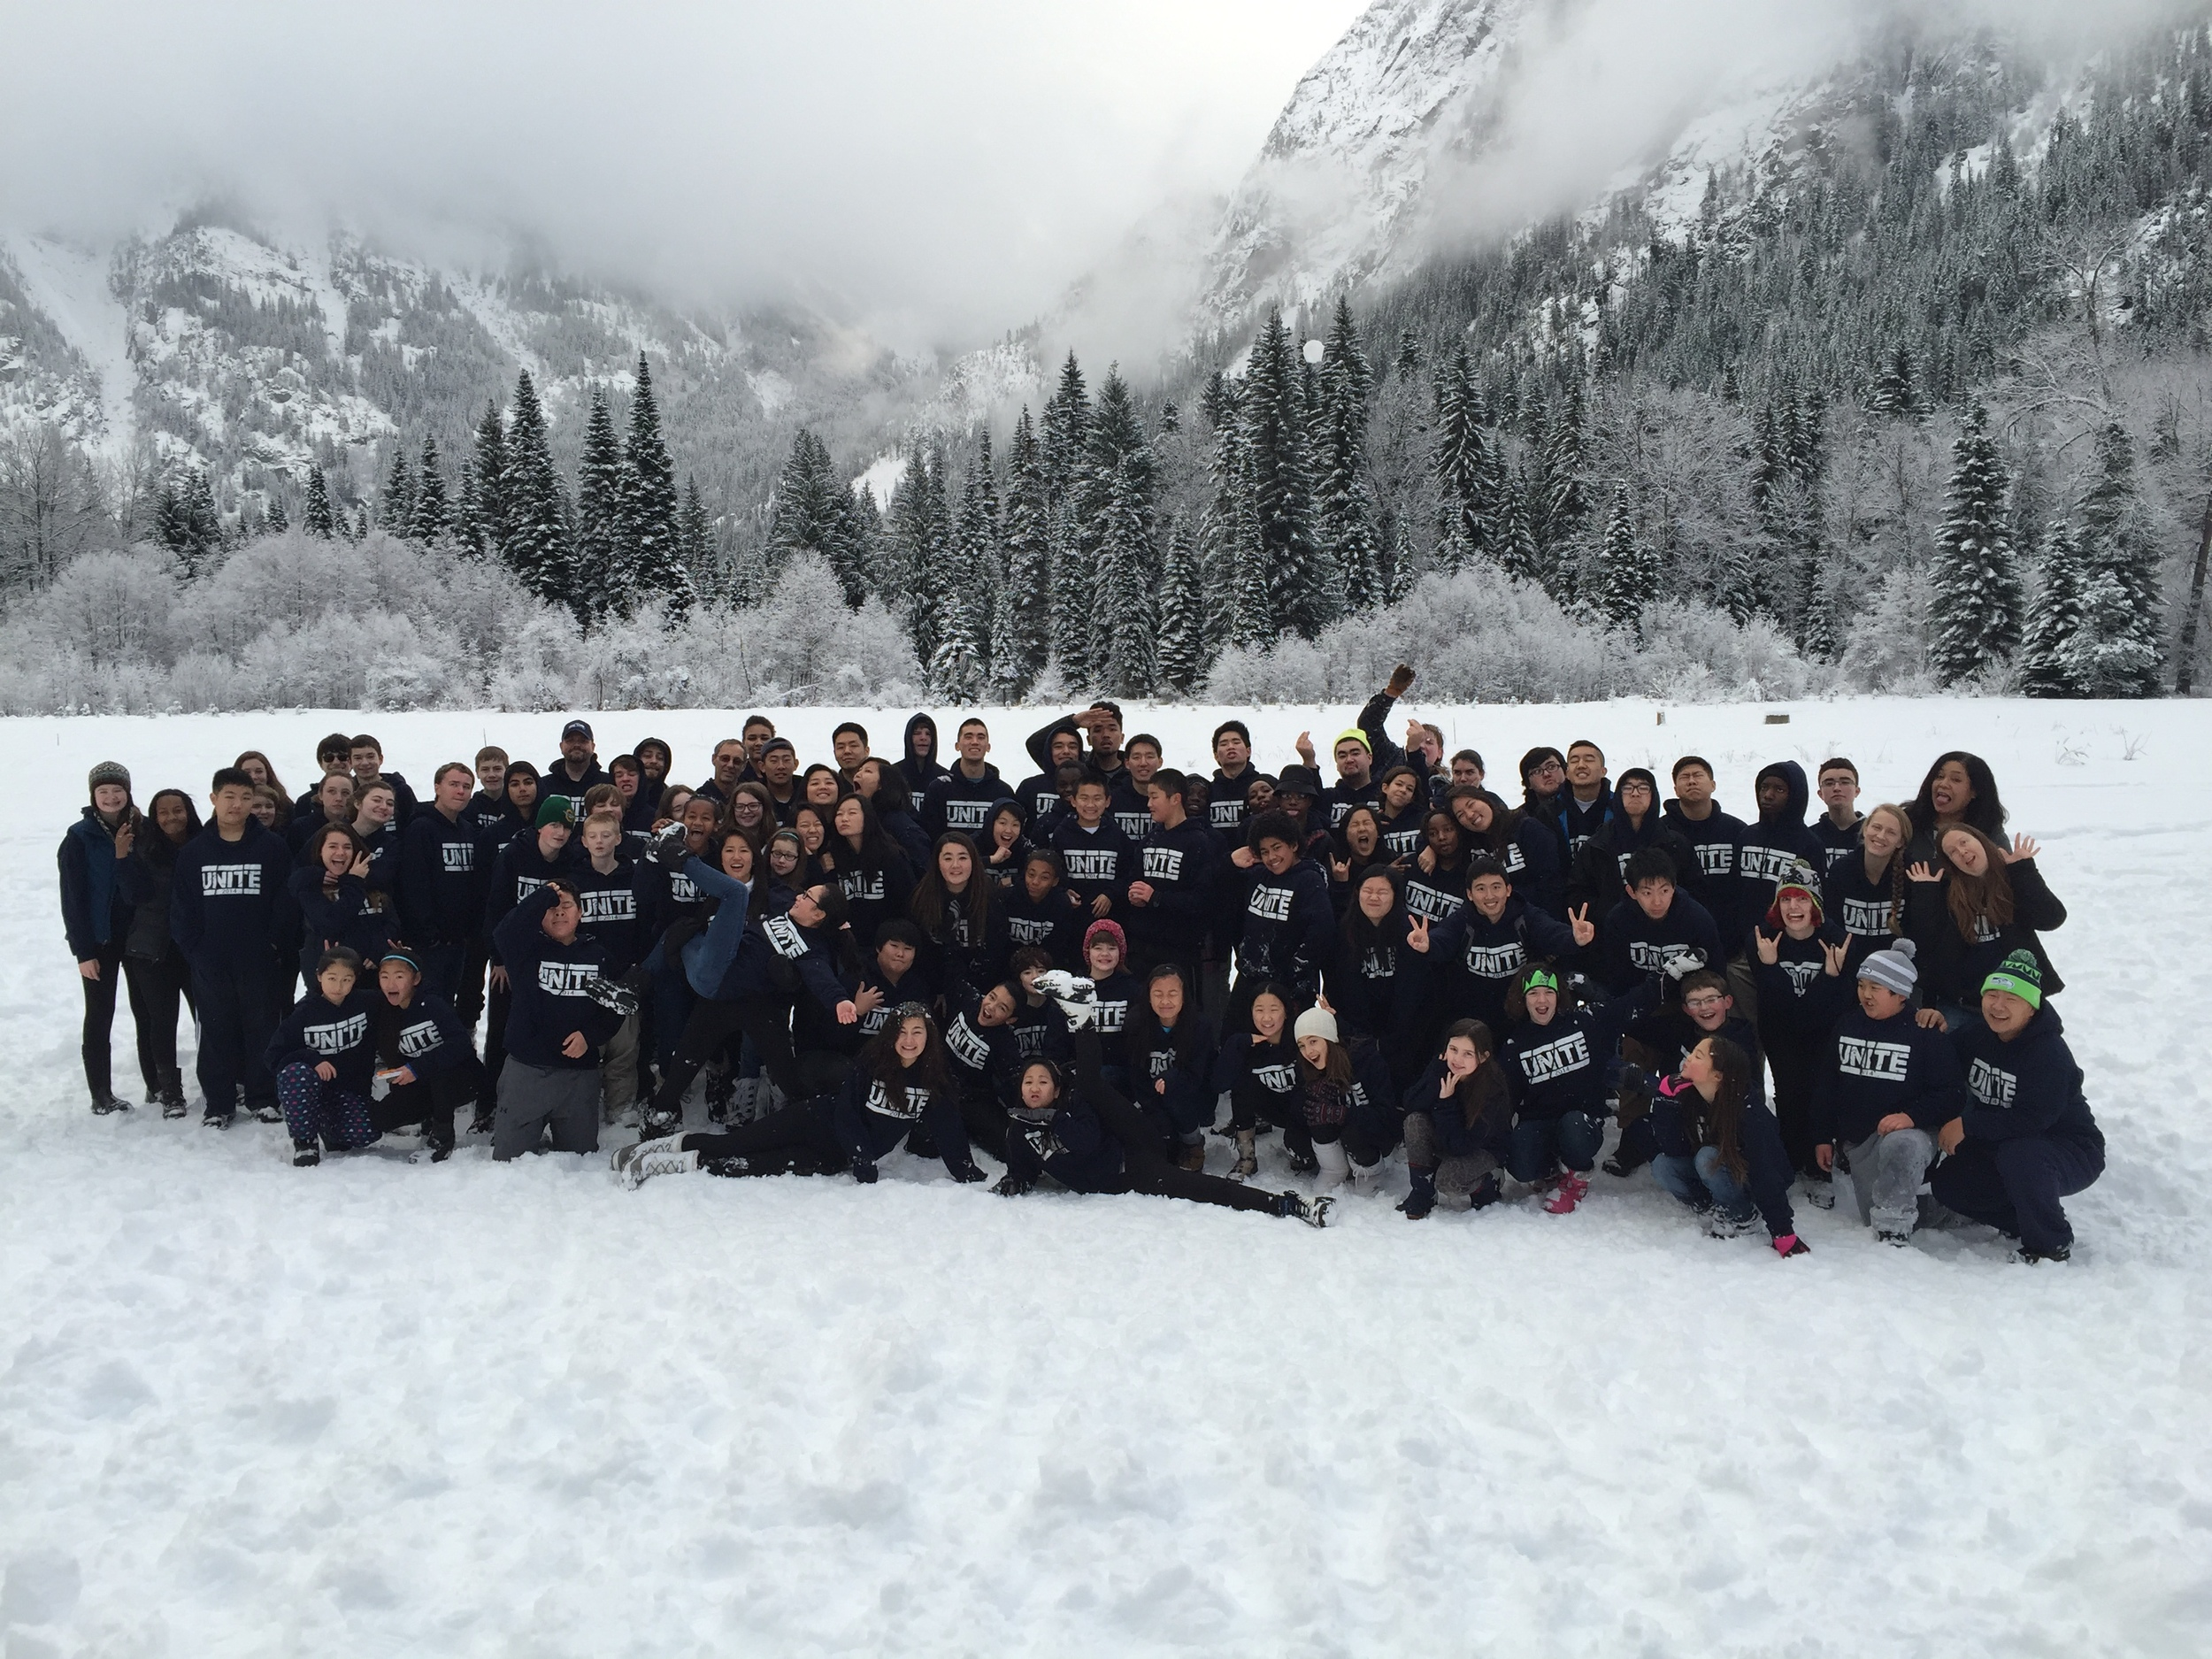 2014 UNITE! Youth Winter Retreat with Presbyterian youth from all over the South Sound